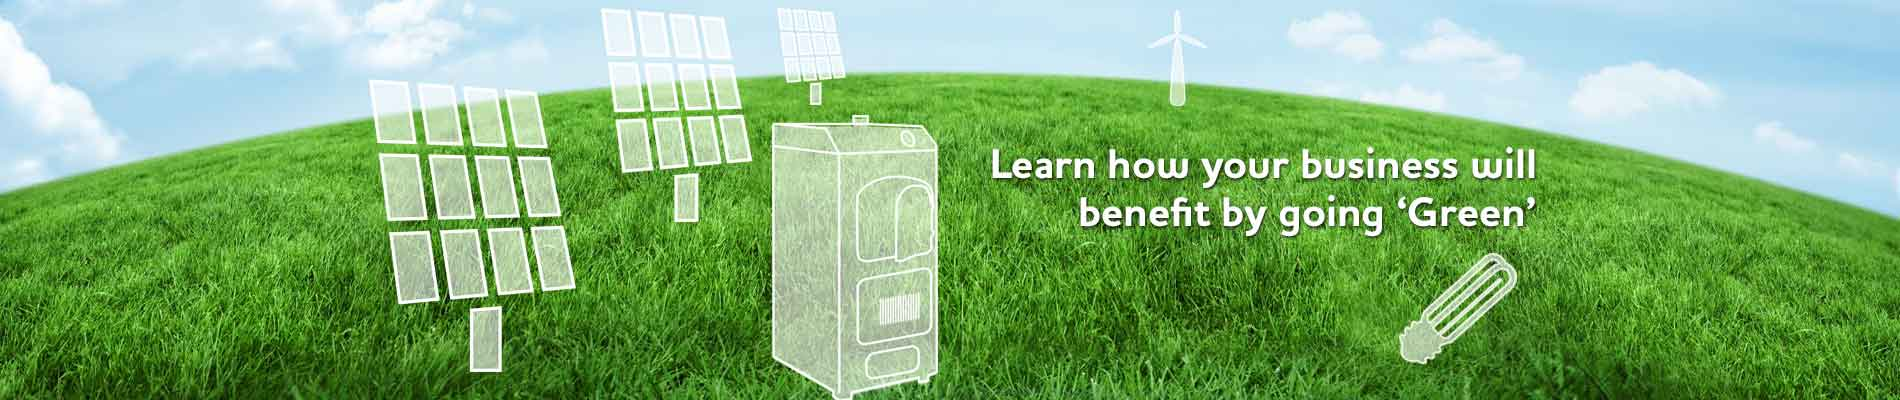 How going green will benefit your business.